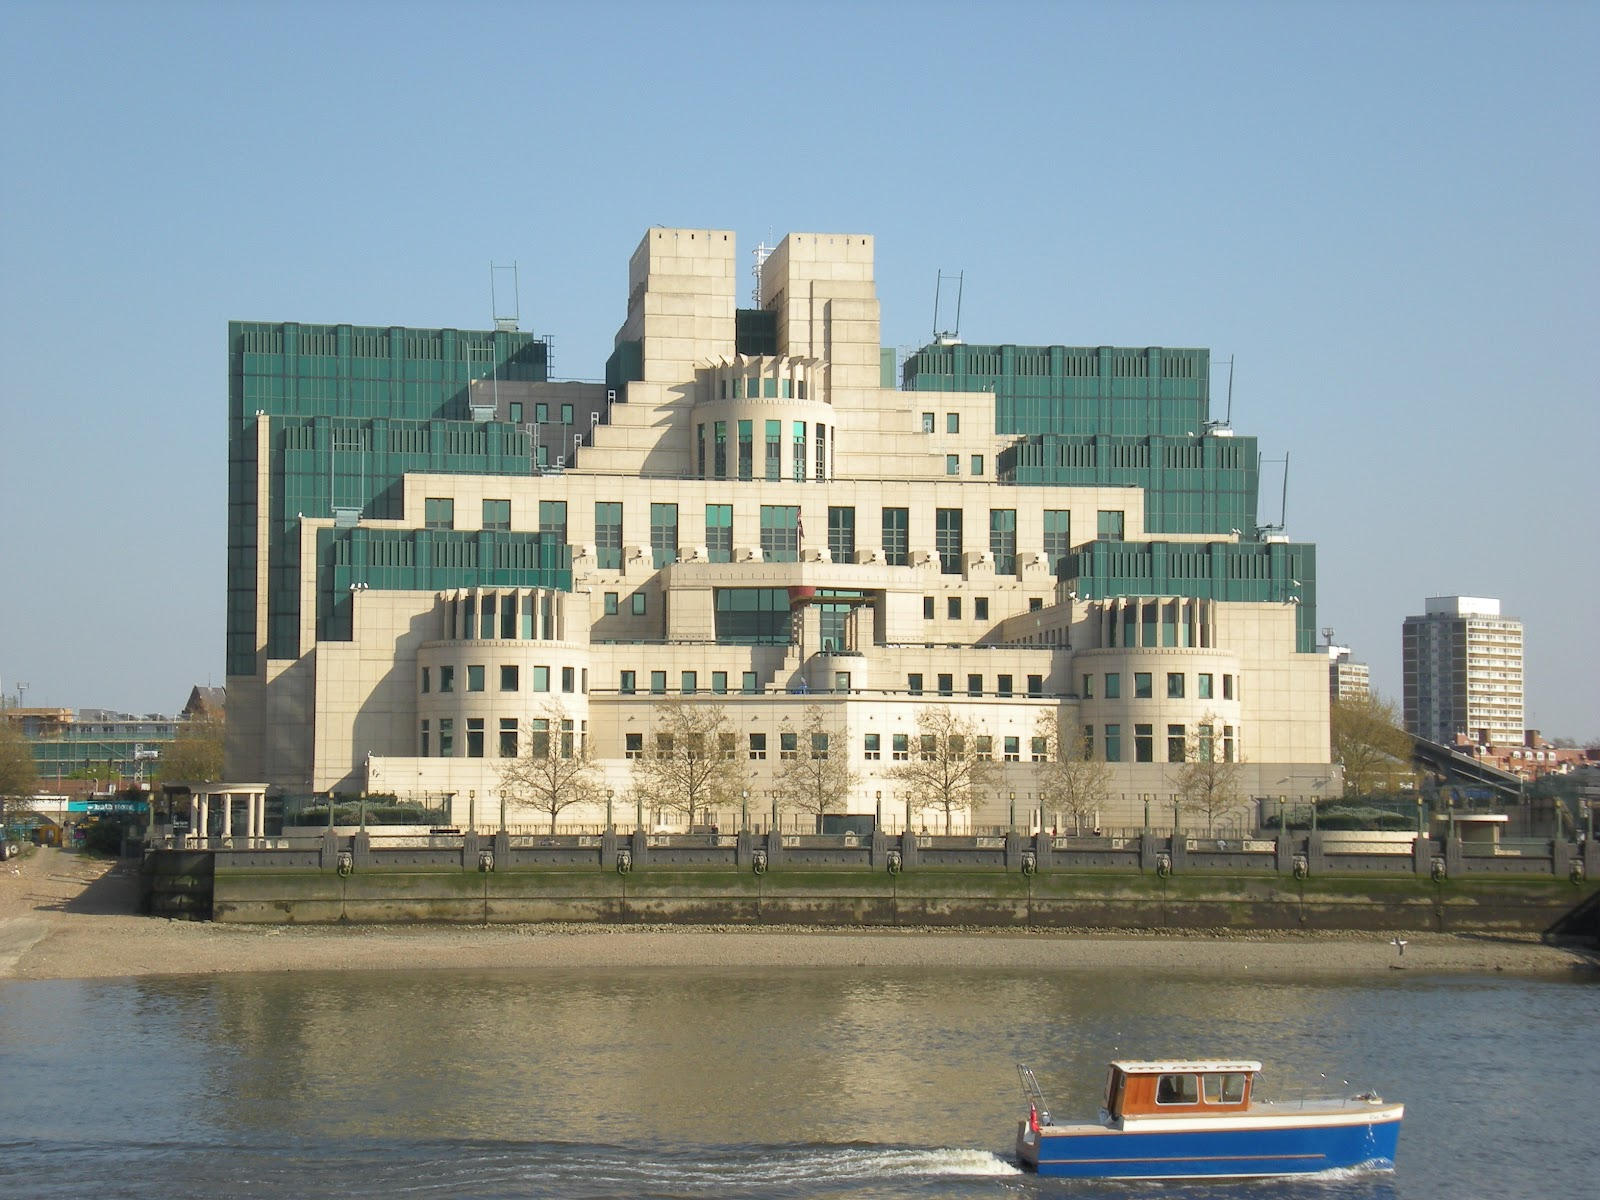 where is MI6 James Bond HQ? | Beyond The Movies